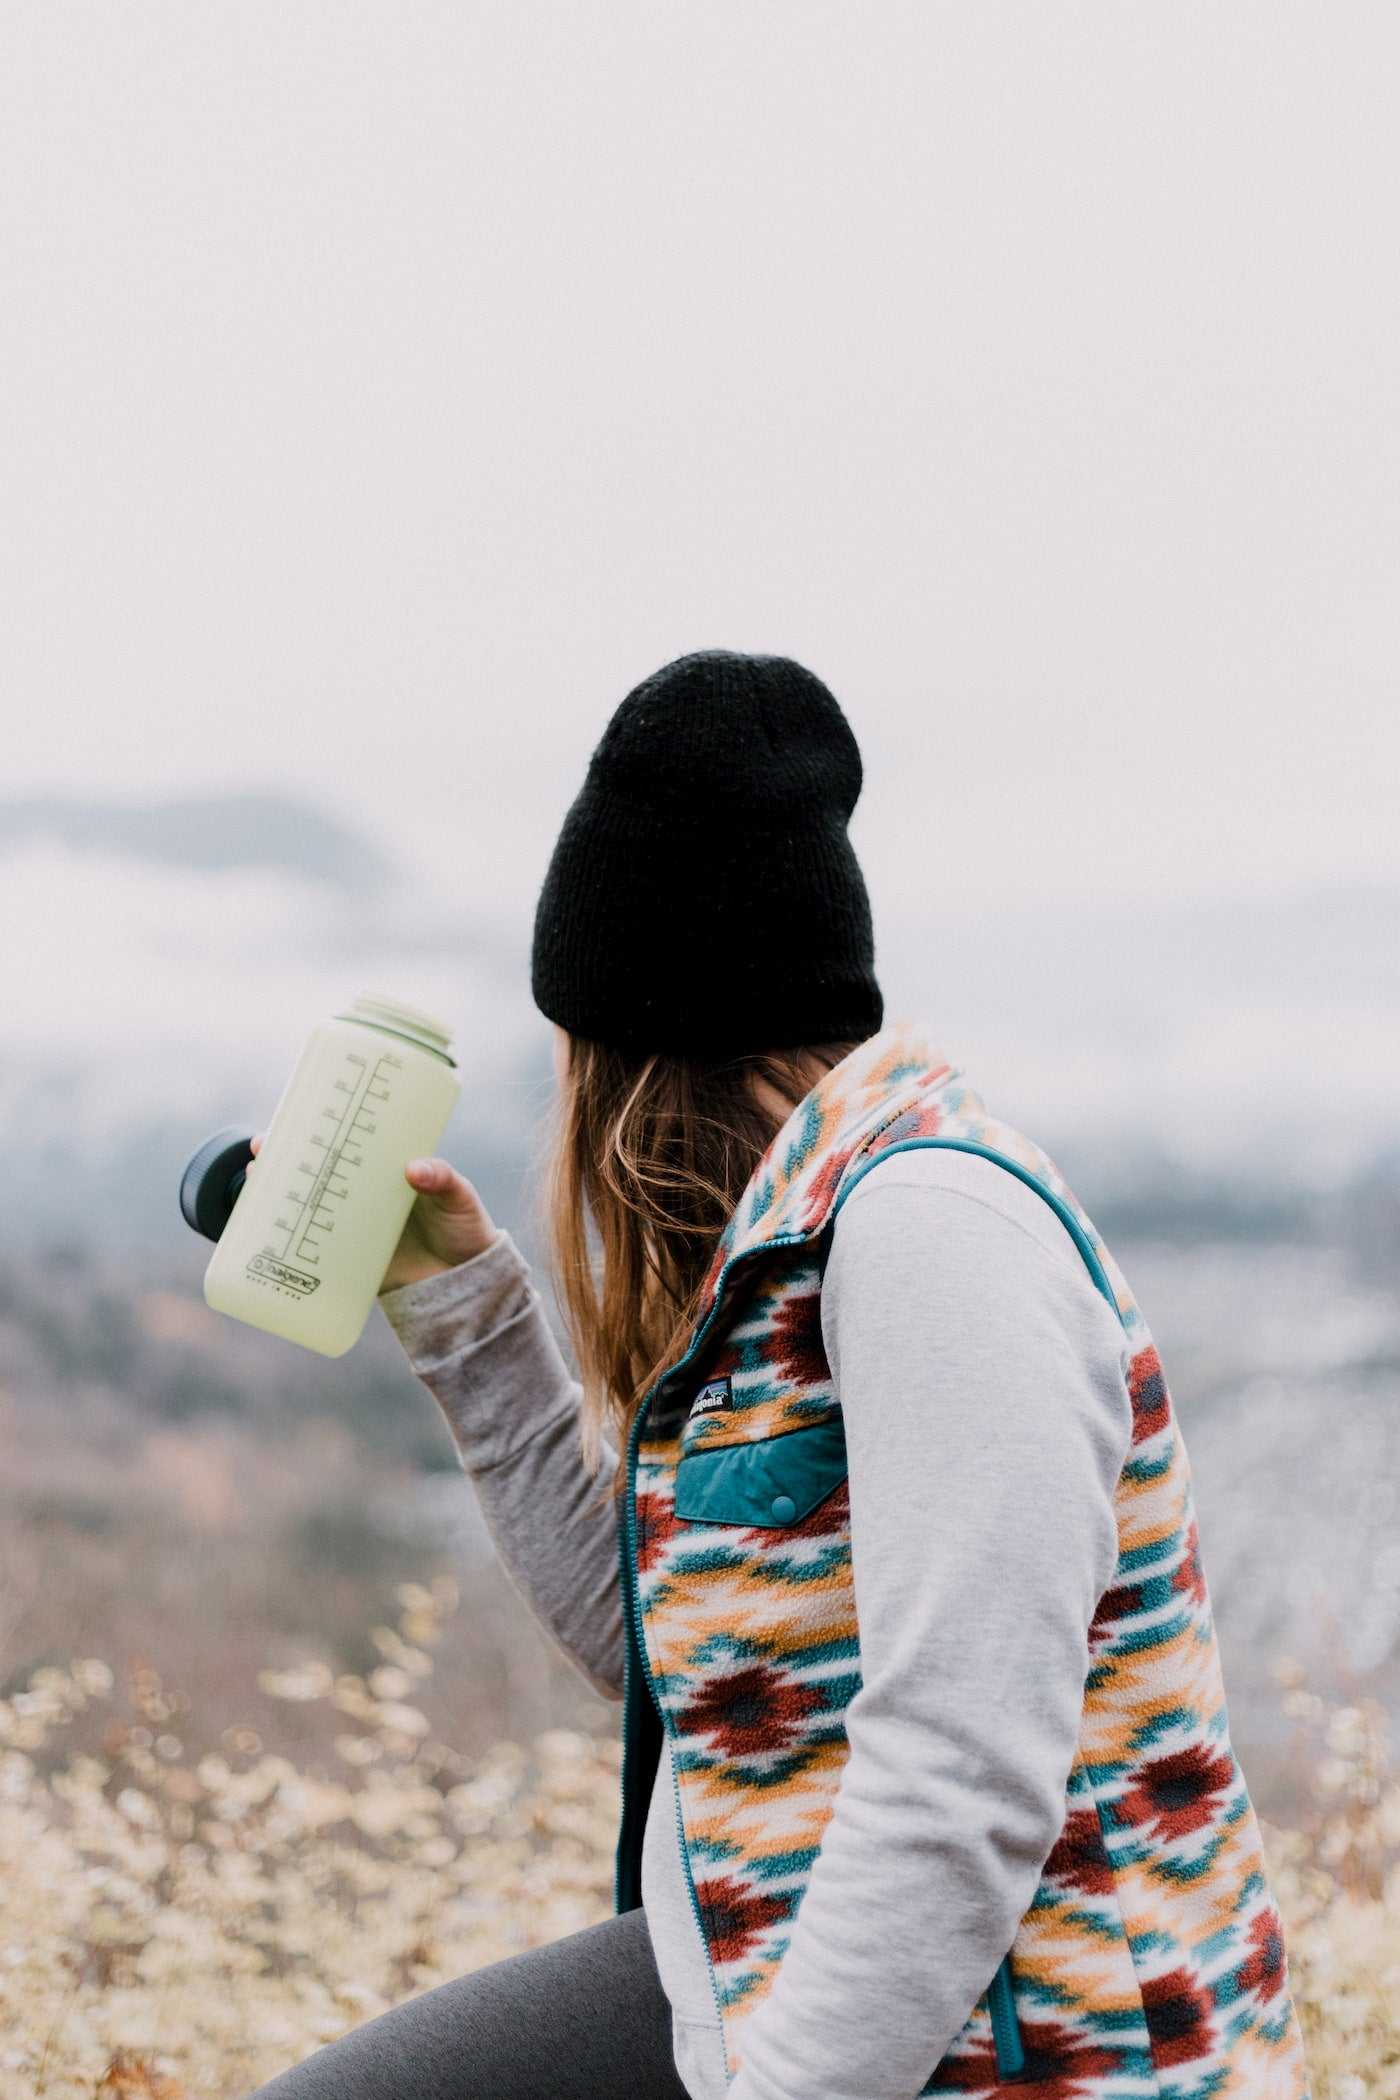 Women wearing outdoors brands in layers and drinking water out of a nalgene.